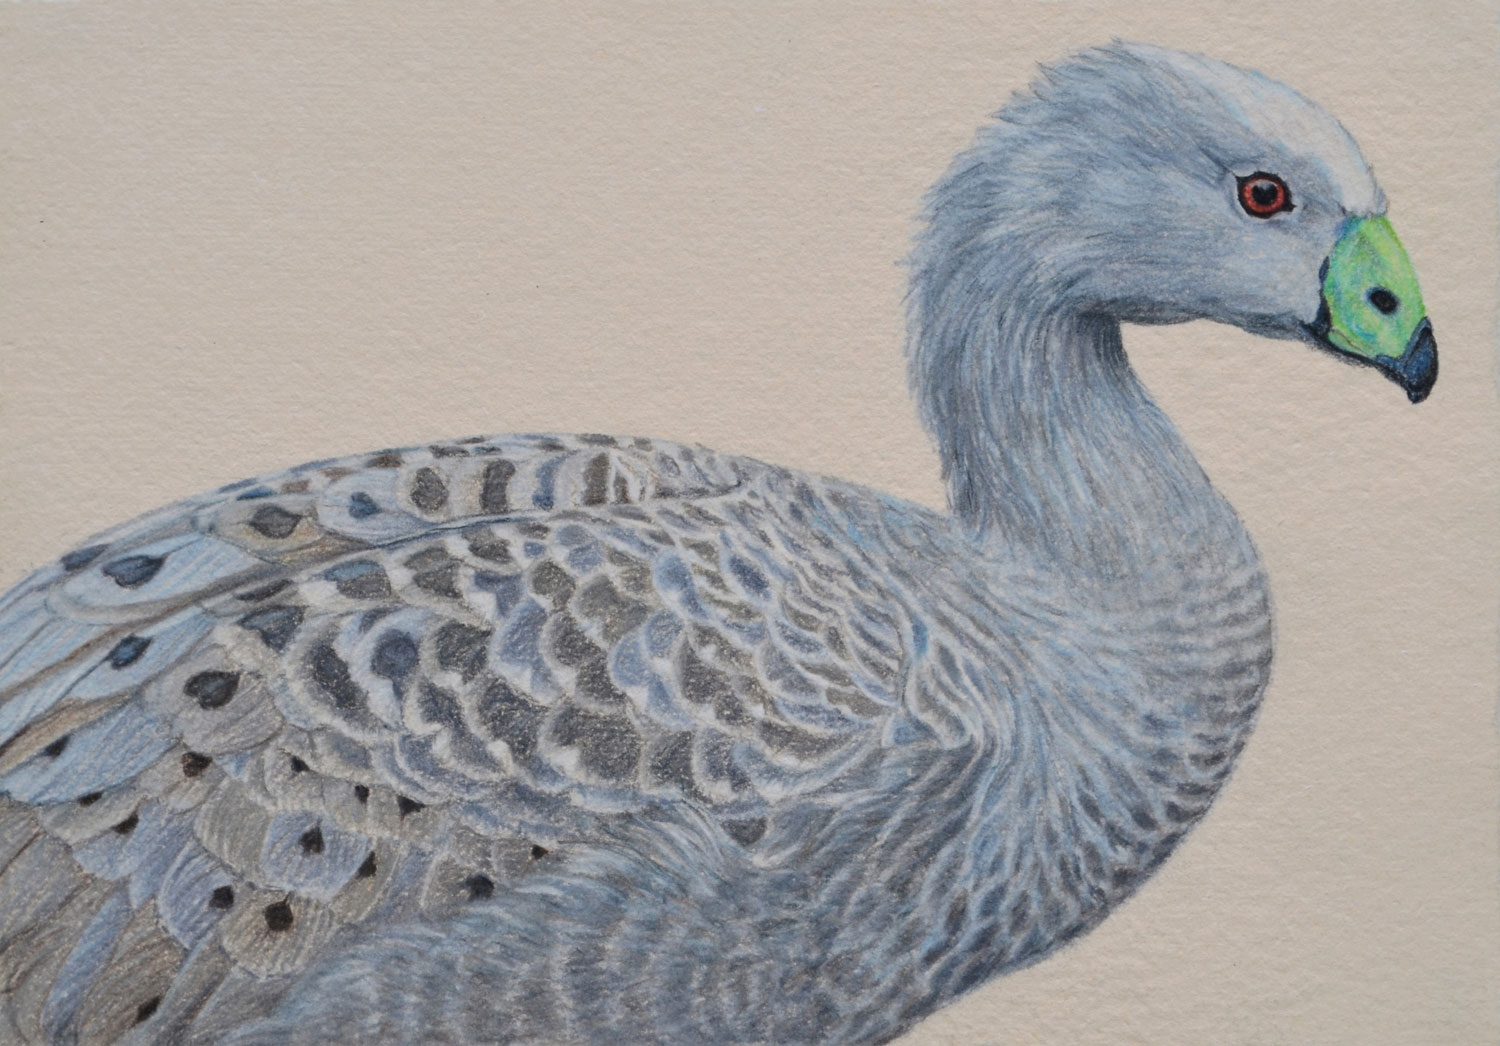 cape barren goose  26 x 37 cm, Pastel Drawing on handmade paper  Available as a limited edition print  $650